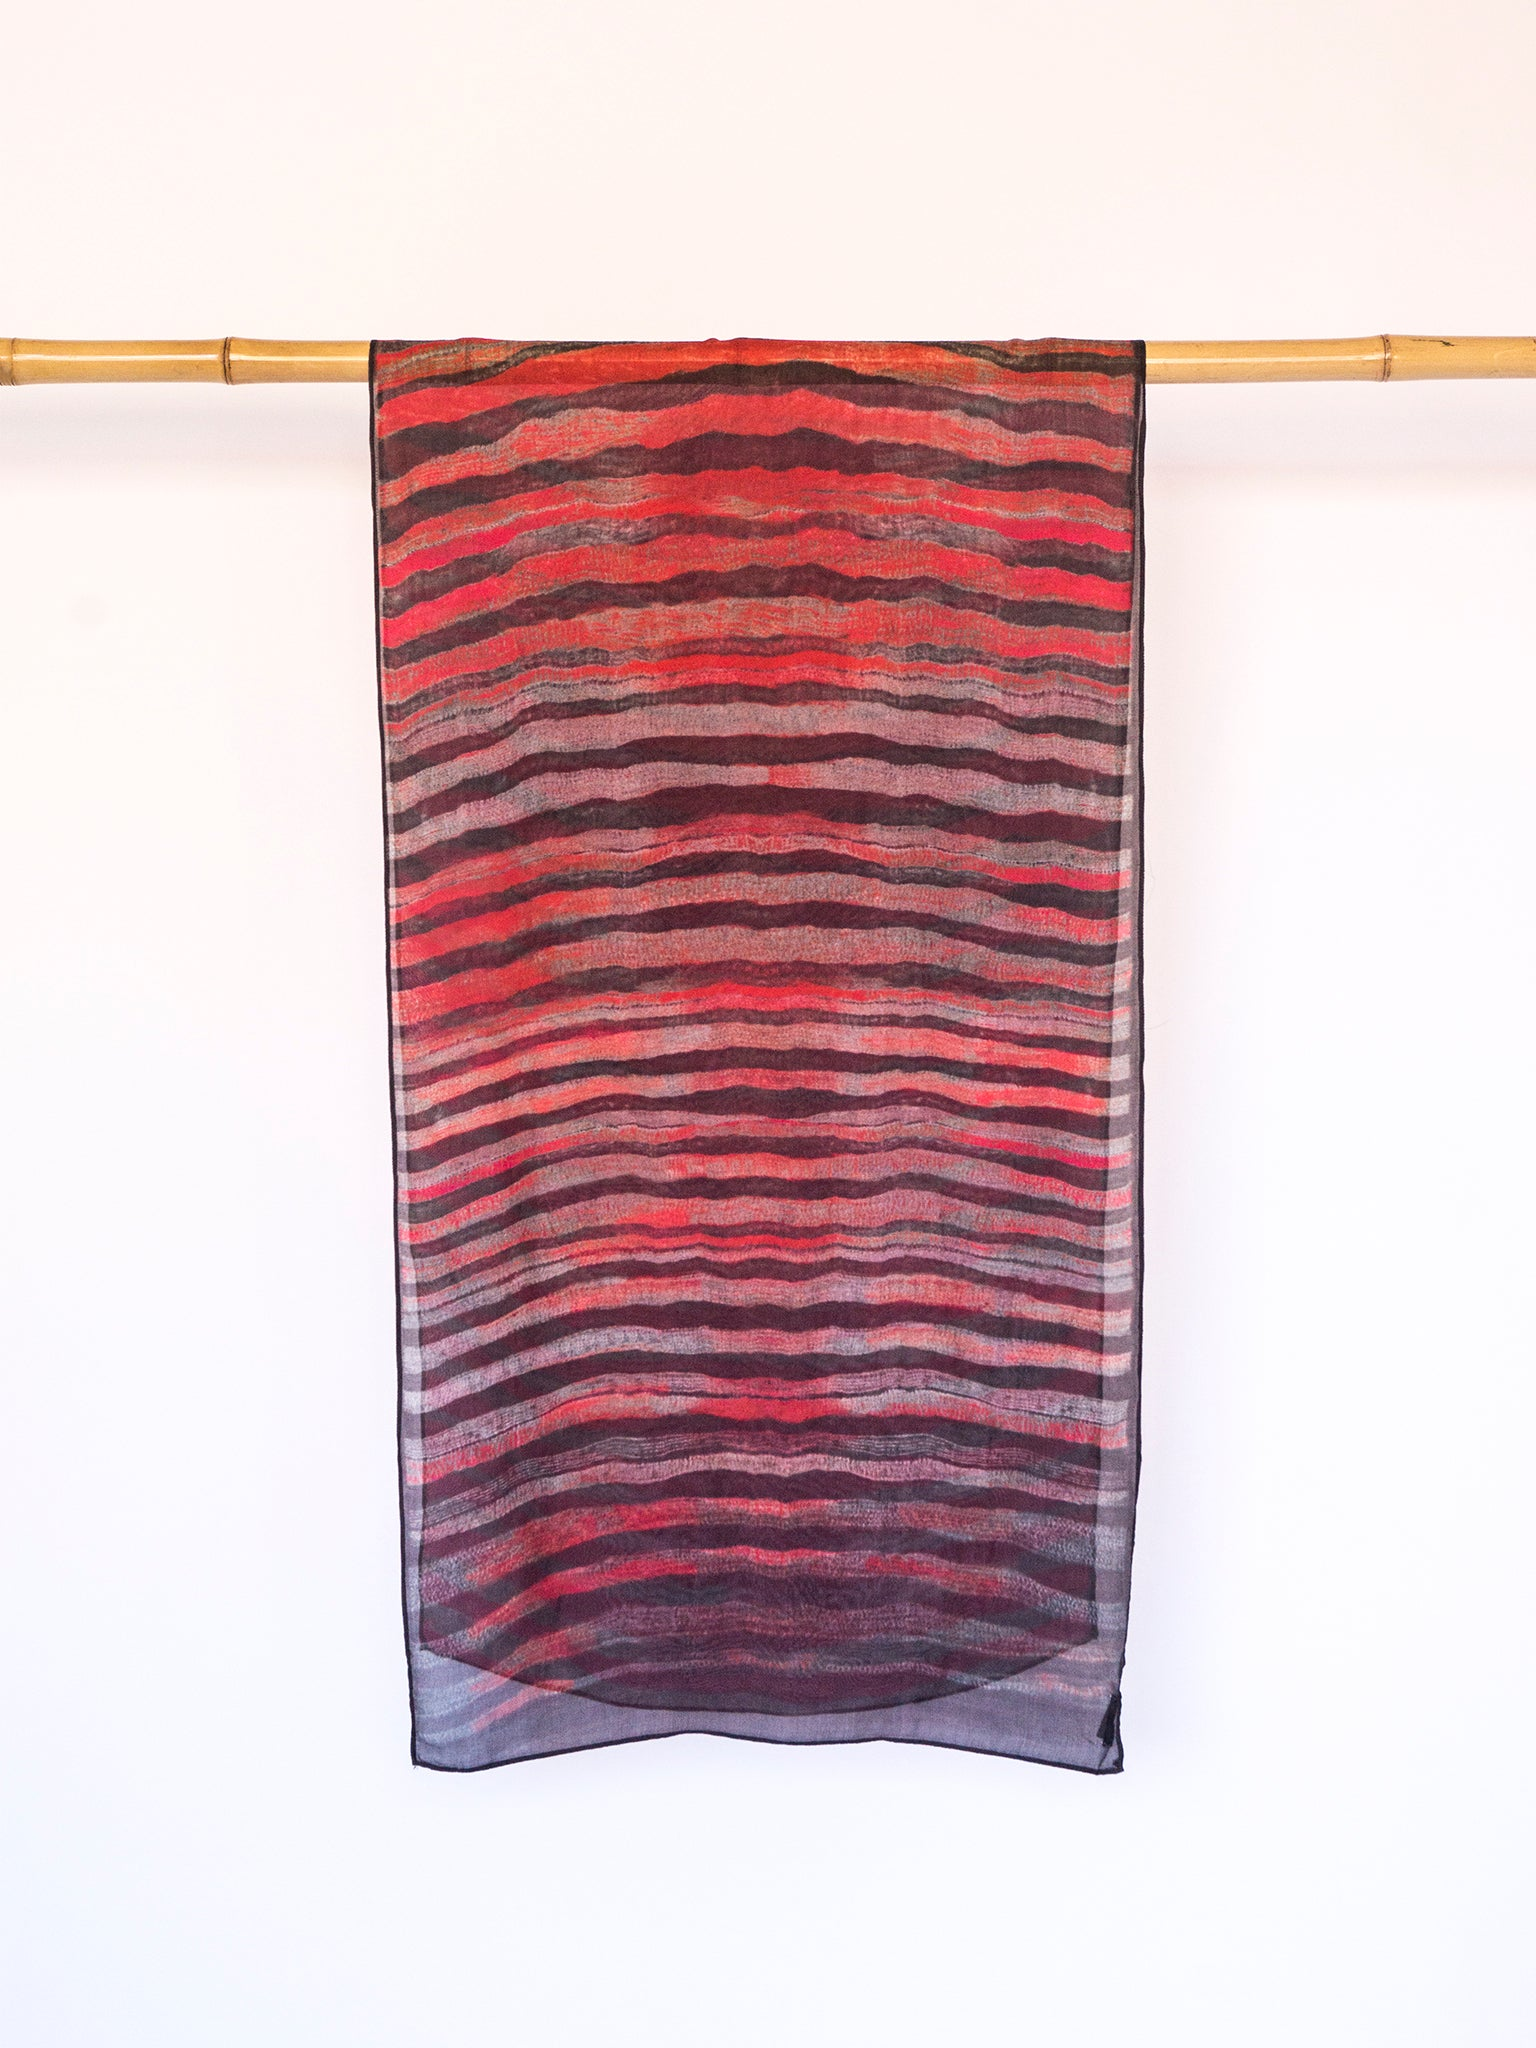 Neeru Kumar Silk Scarf waves